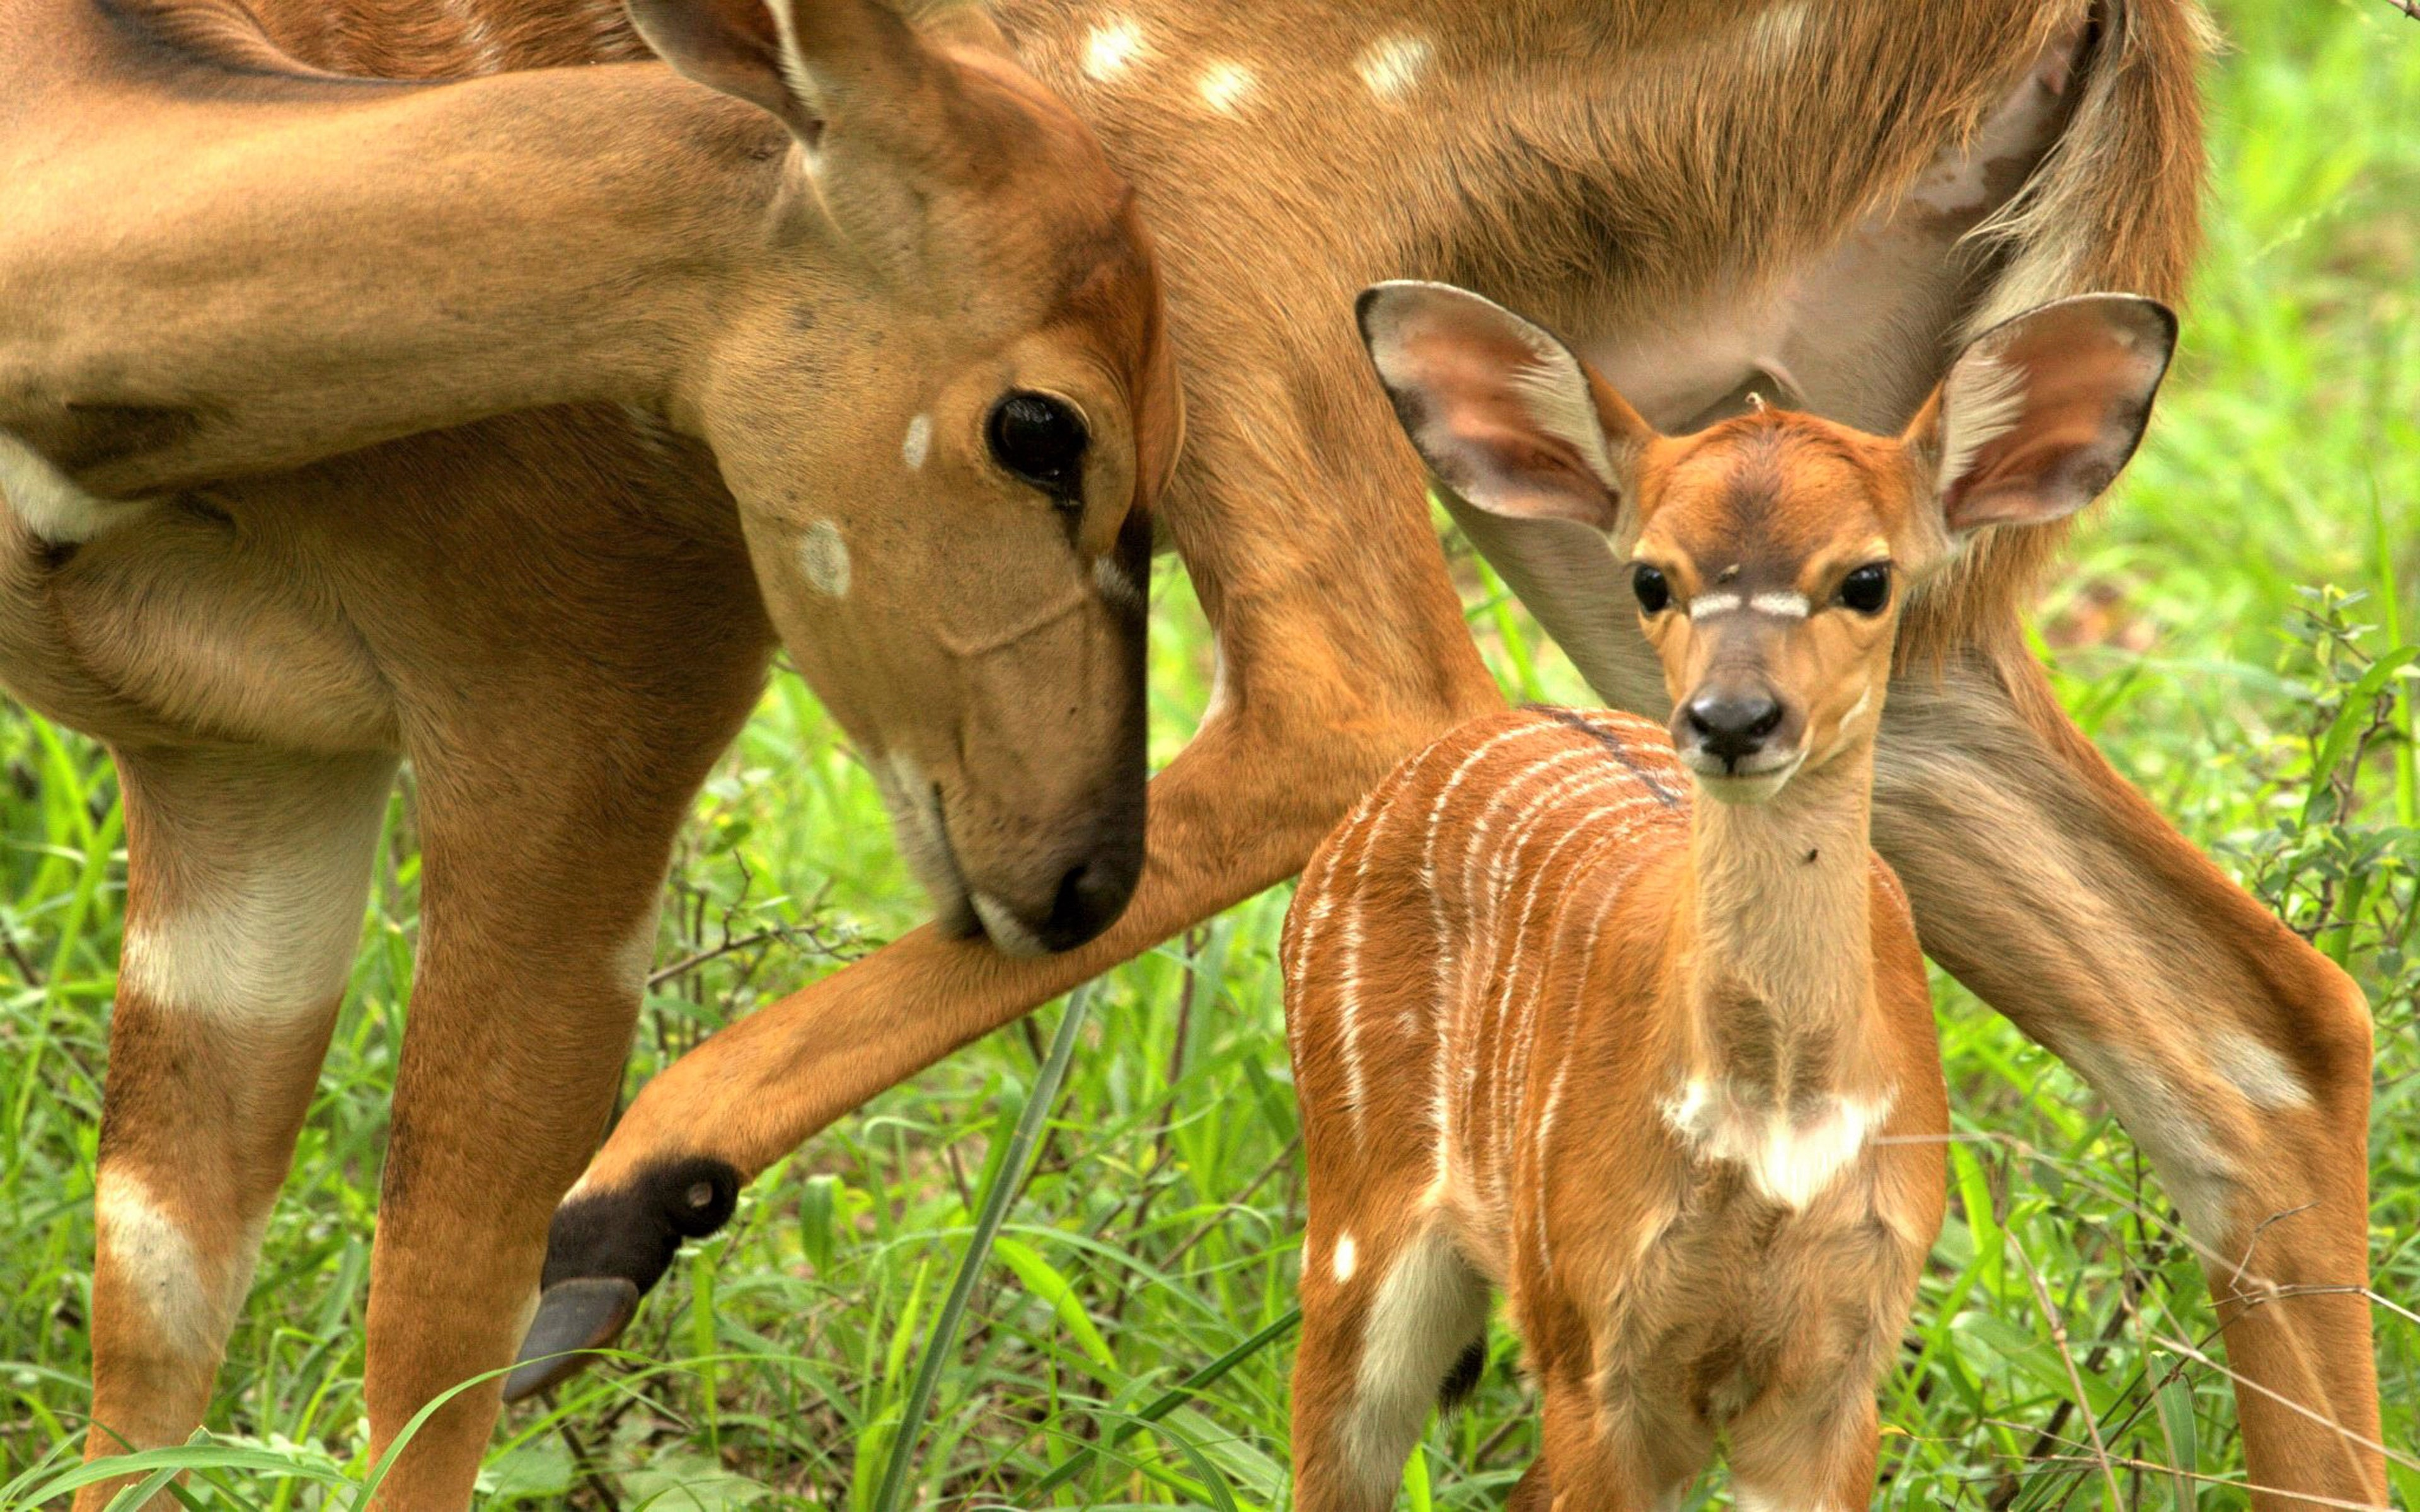 mother deer and her fawn 4k ultra hd wallpaper and